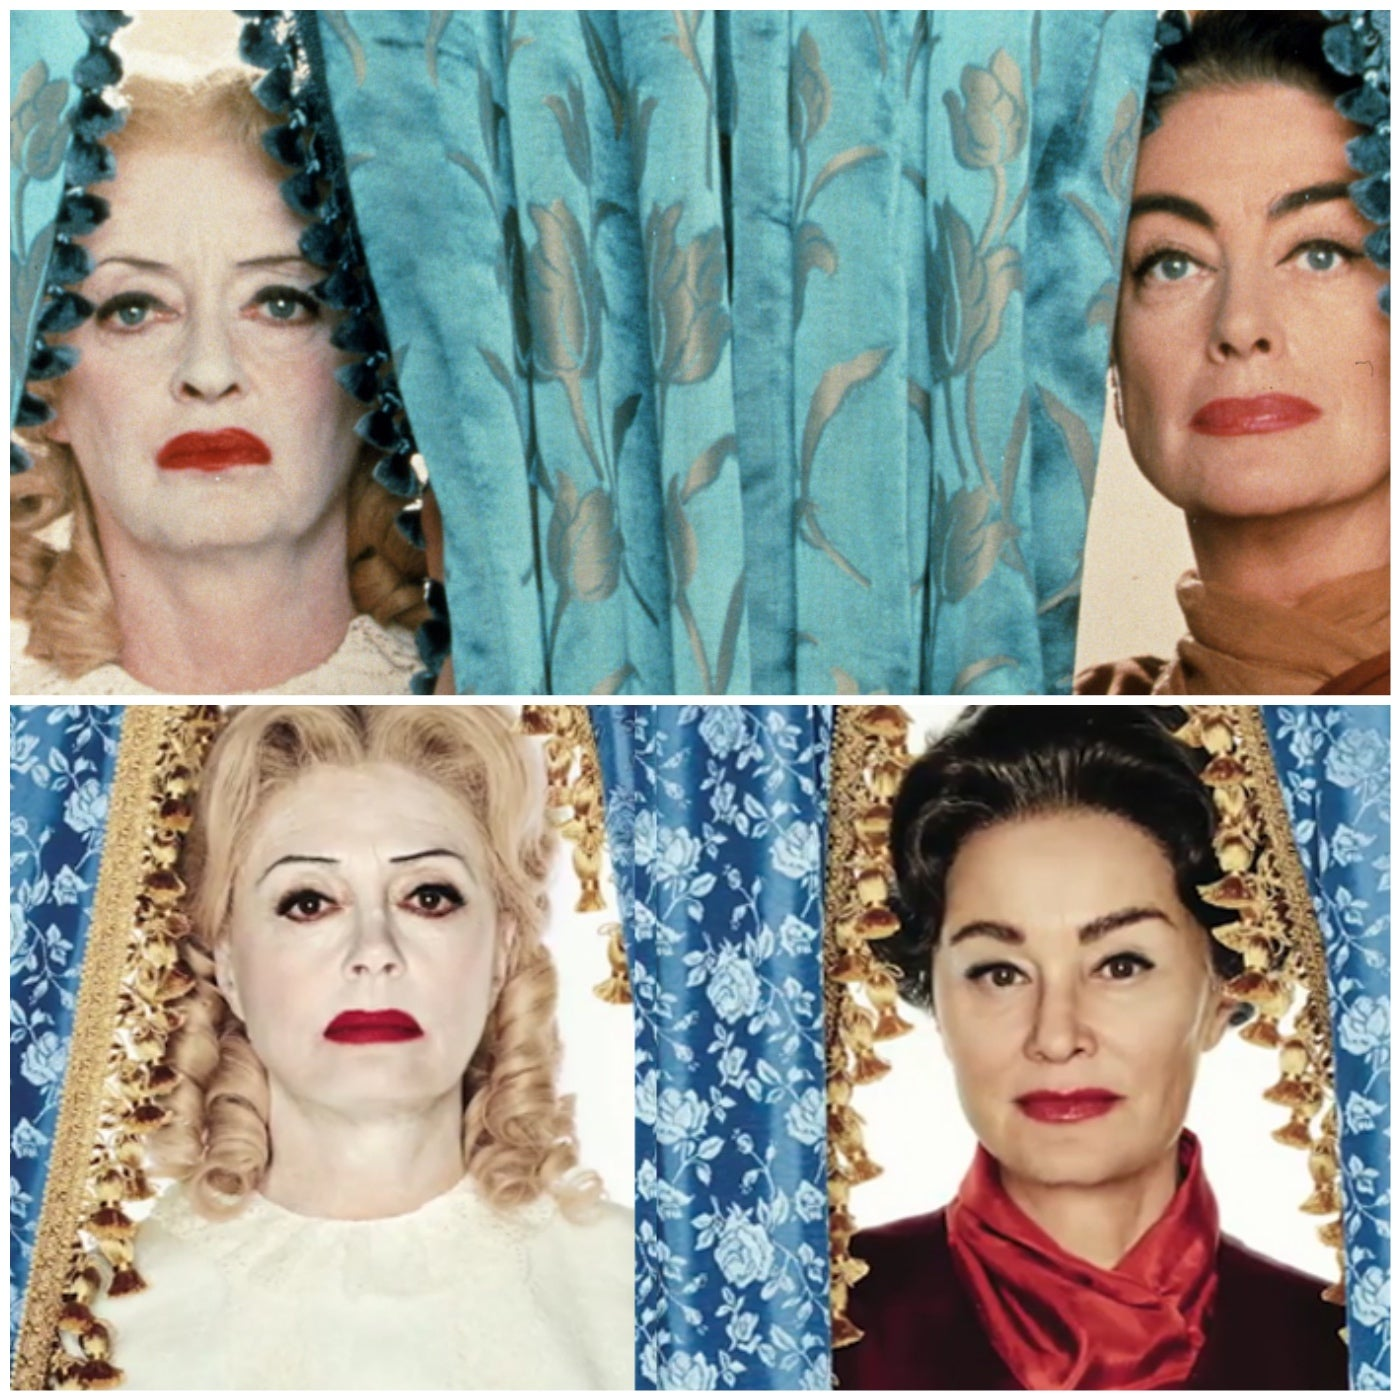 Bette Davis, Joan Crawford, Jessica Lange and Susan Sarandon